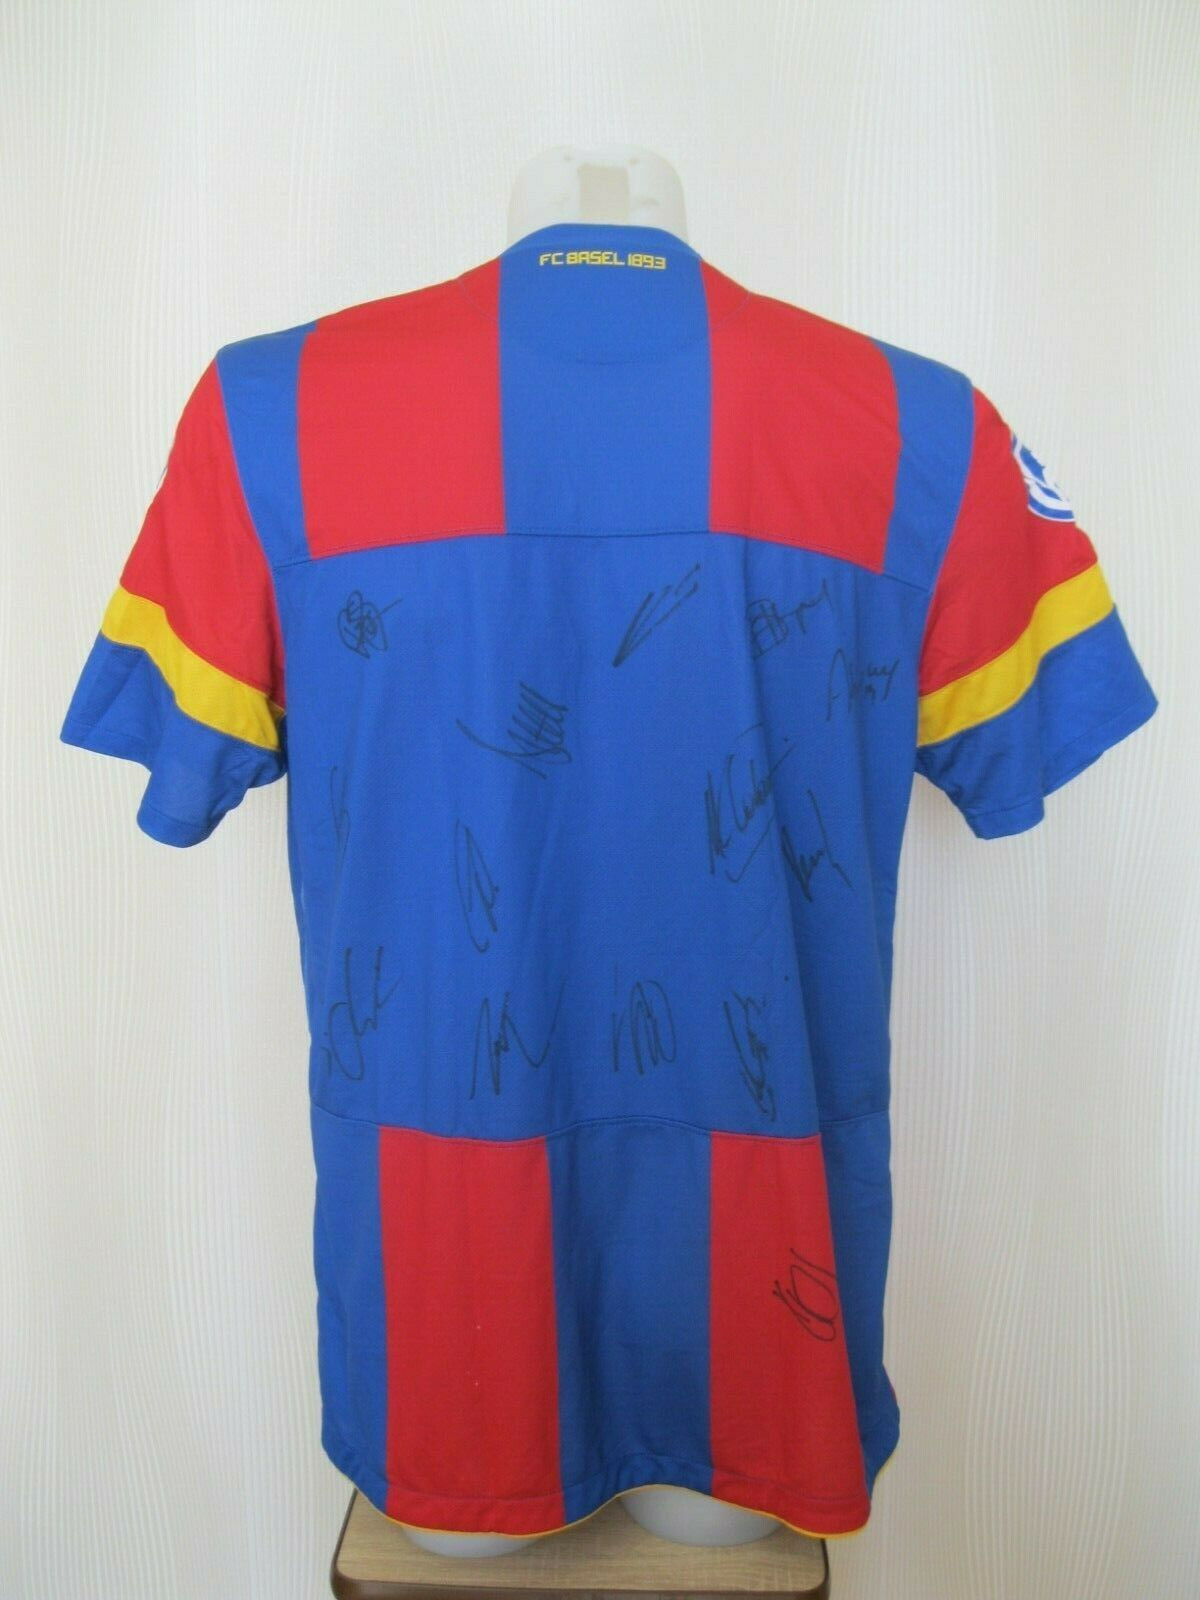 SIGNED FC Basel 1893 2011/2012 home Size L Nike 383370-494 jersey